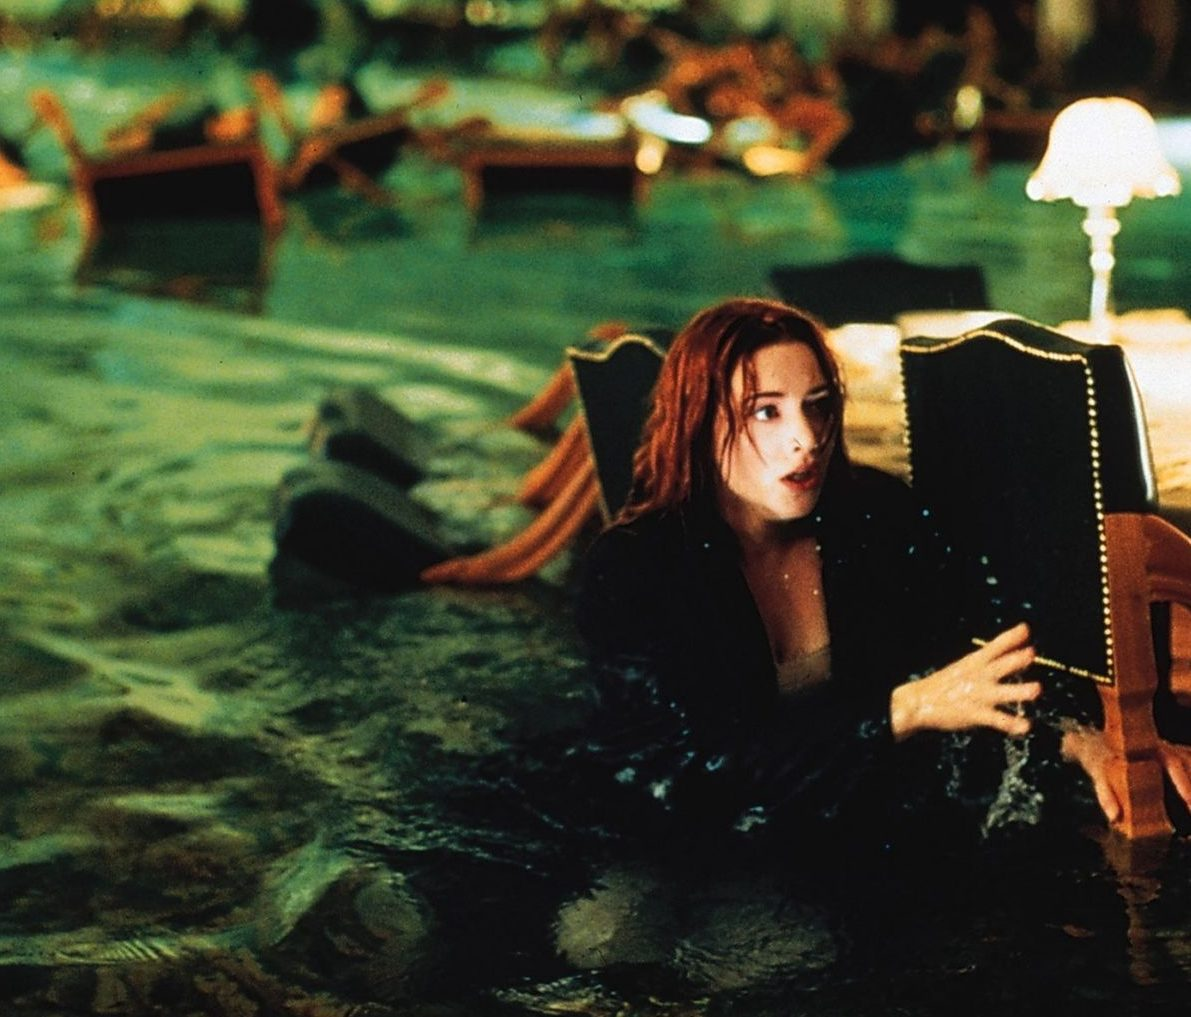 Kate Winslet e1623831009735 Dangerous Movie Production Moments That Could Never Happen Today